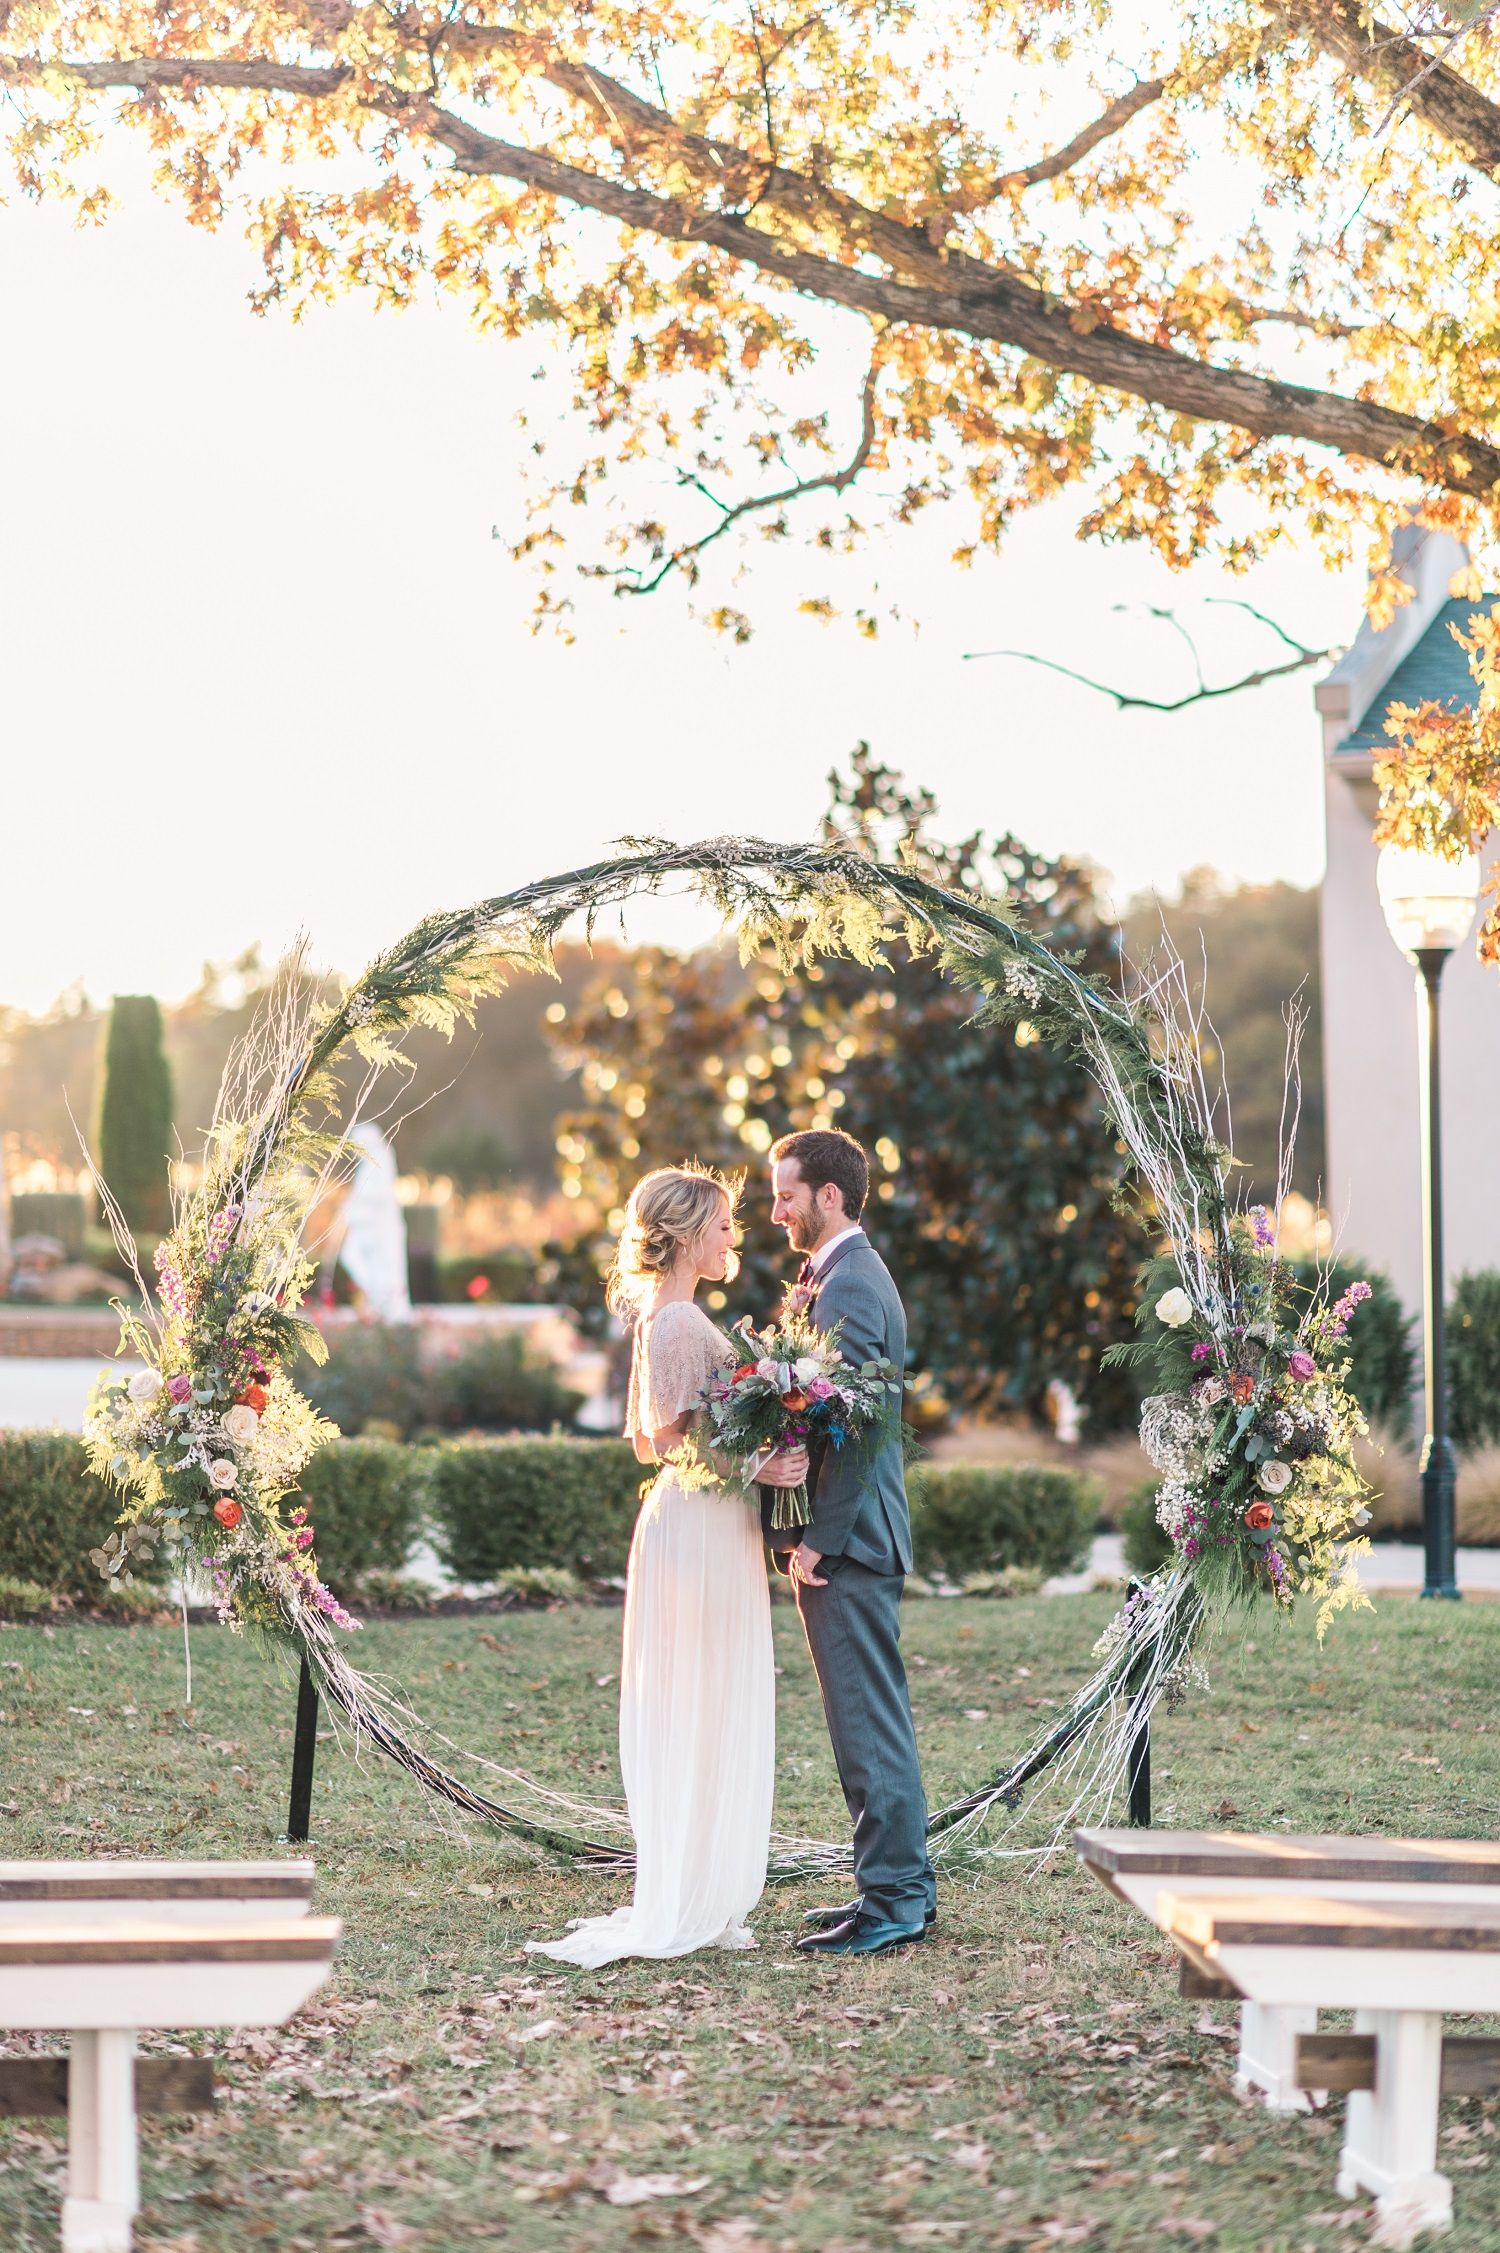 MSW Floral Hoop and Wooden Ceremony Benches at Morais